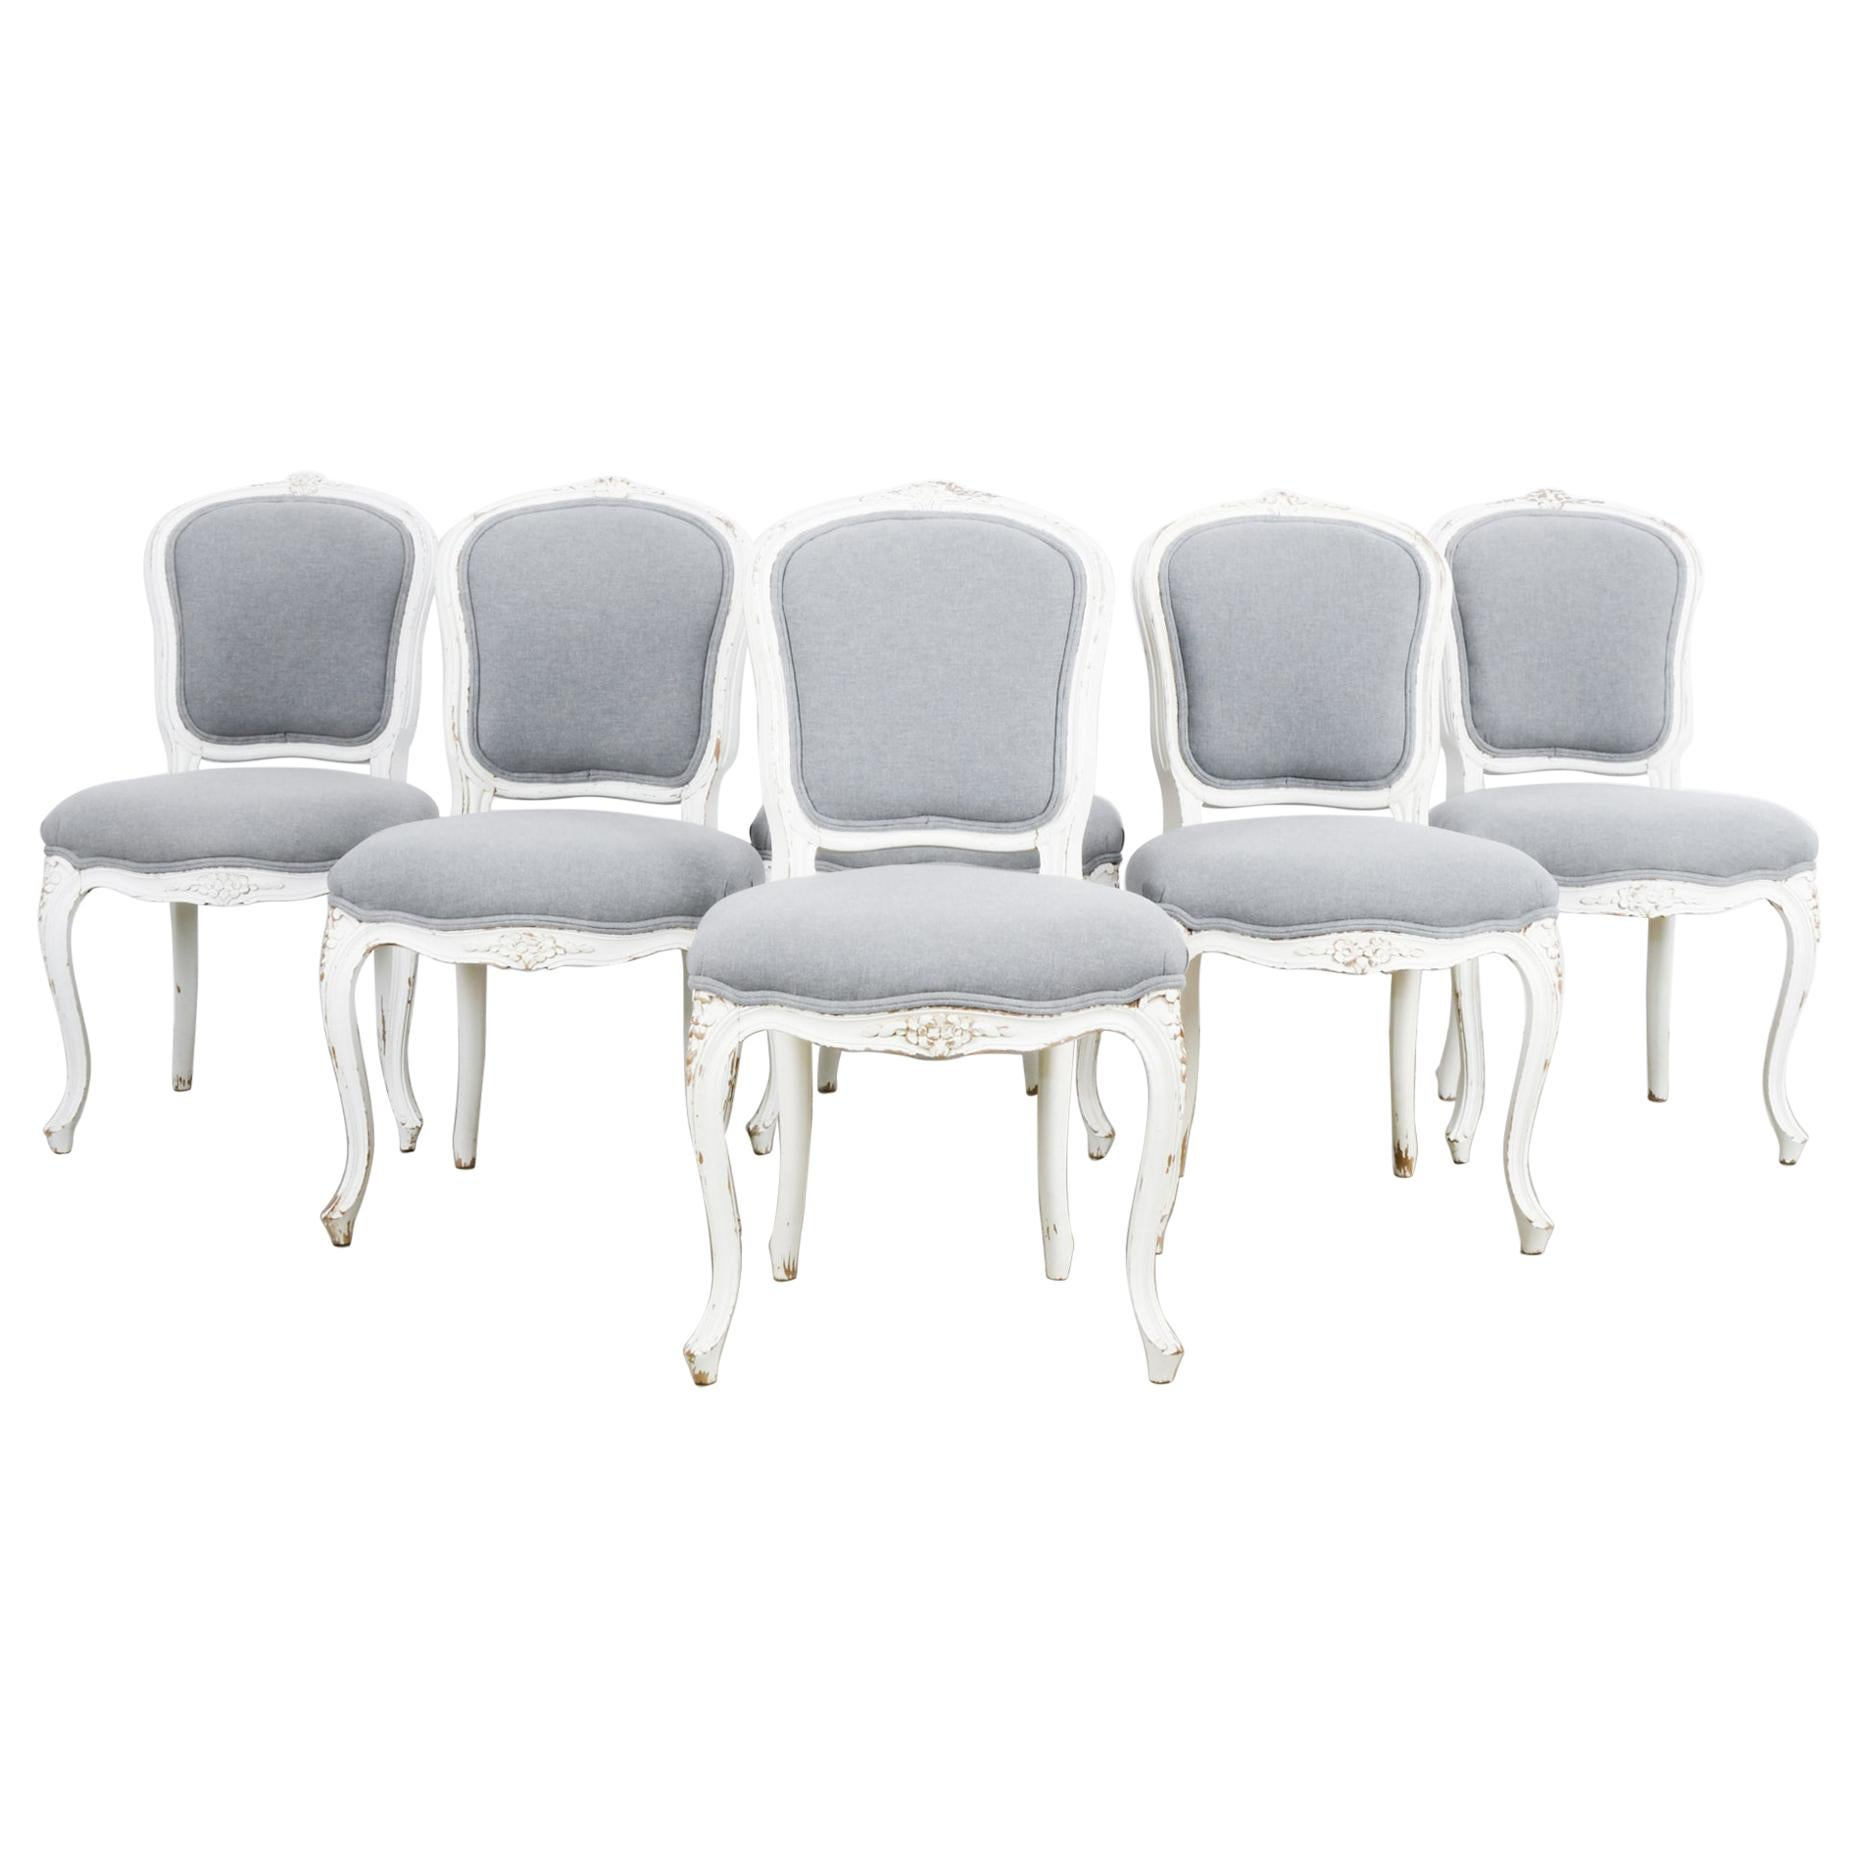 1920s French White Dining Chairs, Set of Six